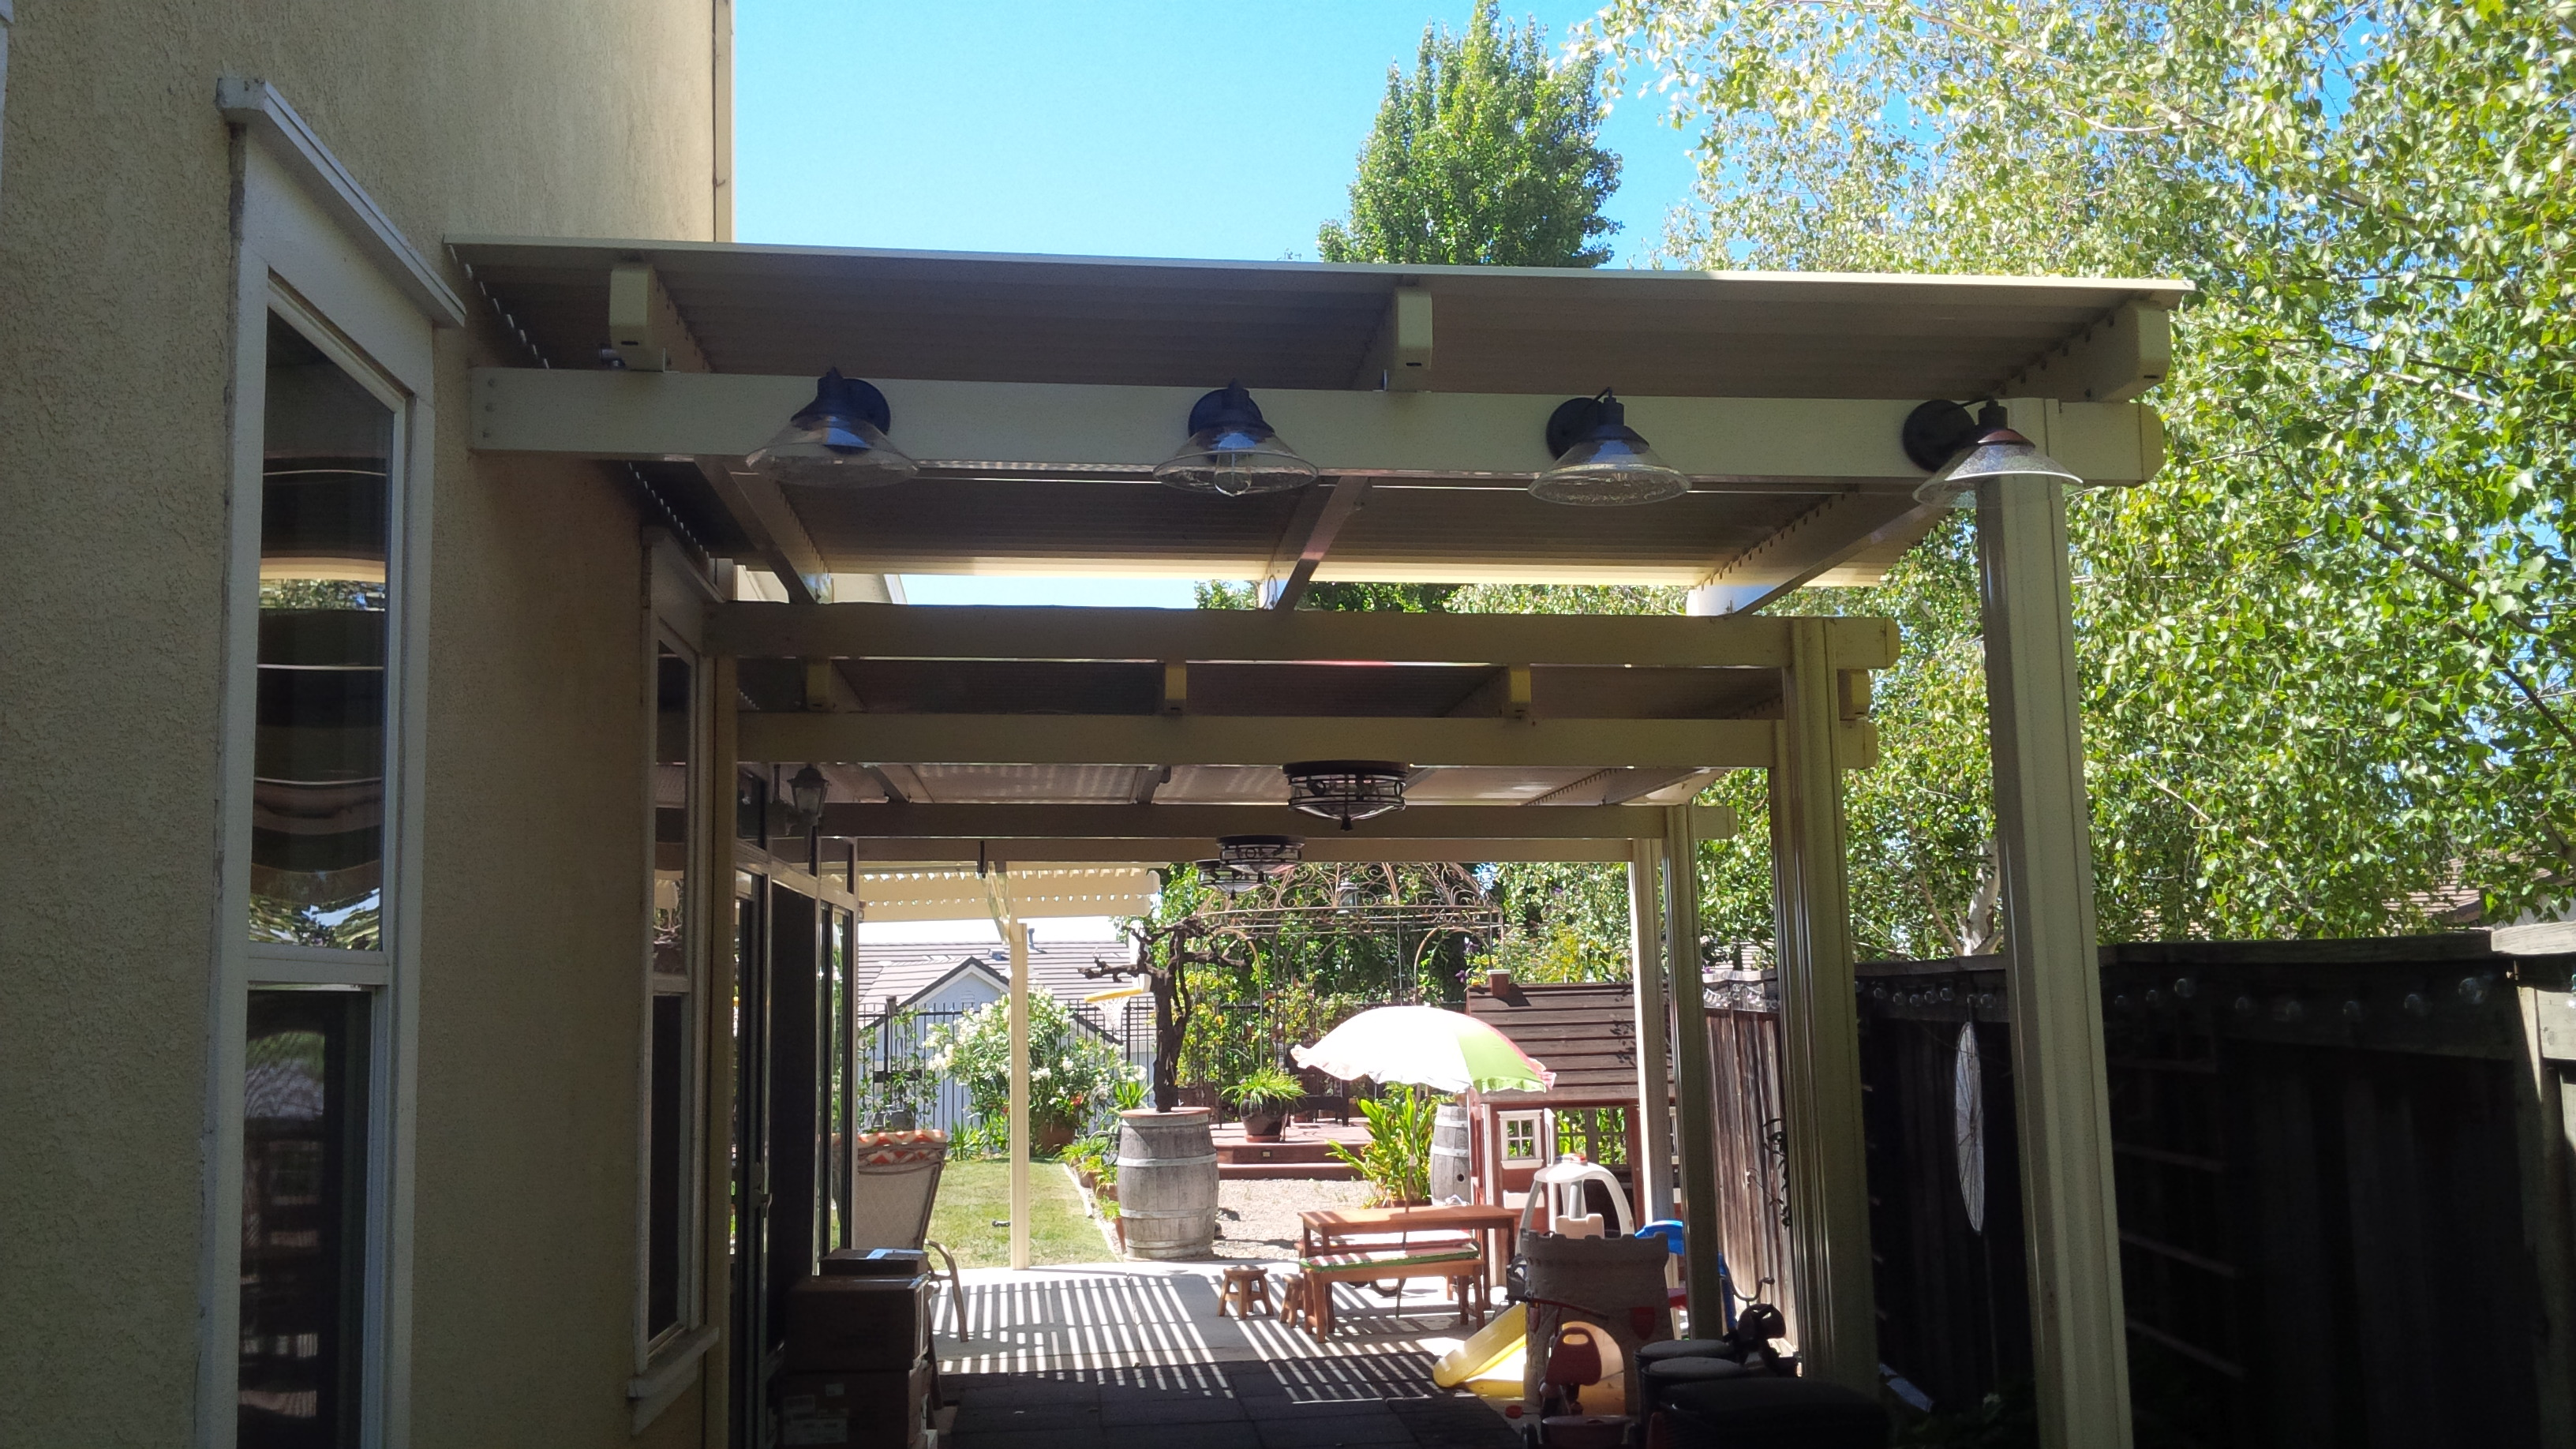 28.  Solara patio covers